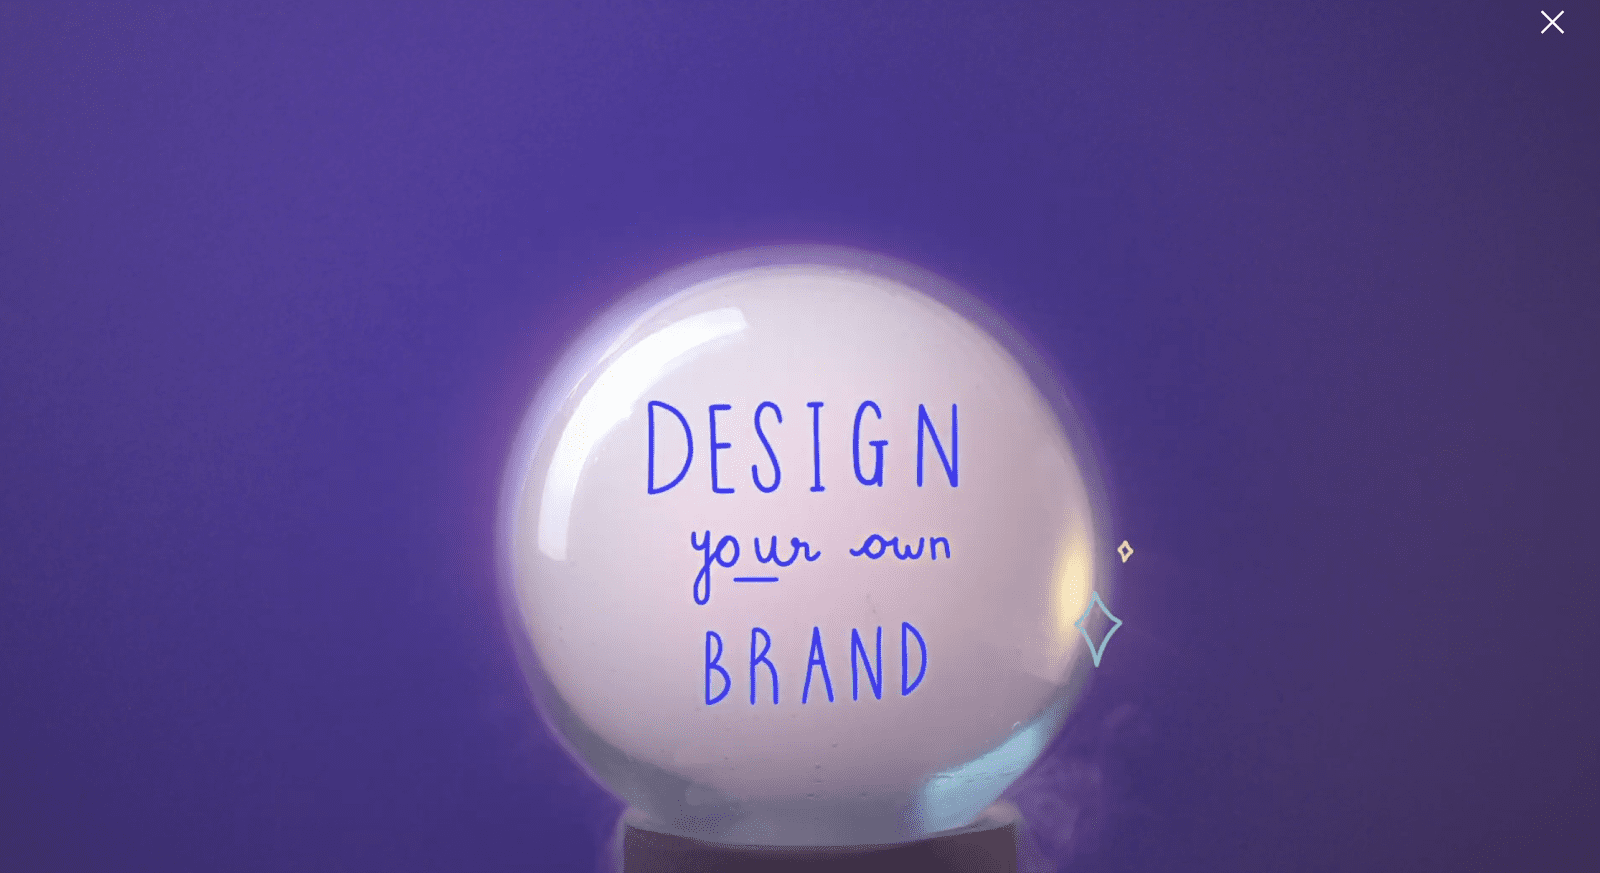 crystal ball with words 'design your own brand' seen on top of purple backdrop